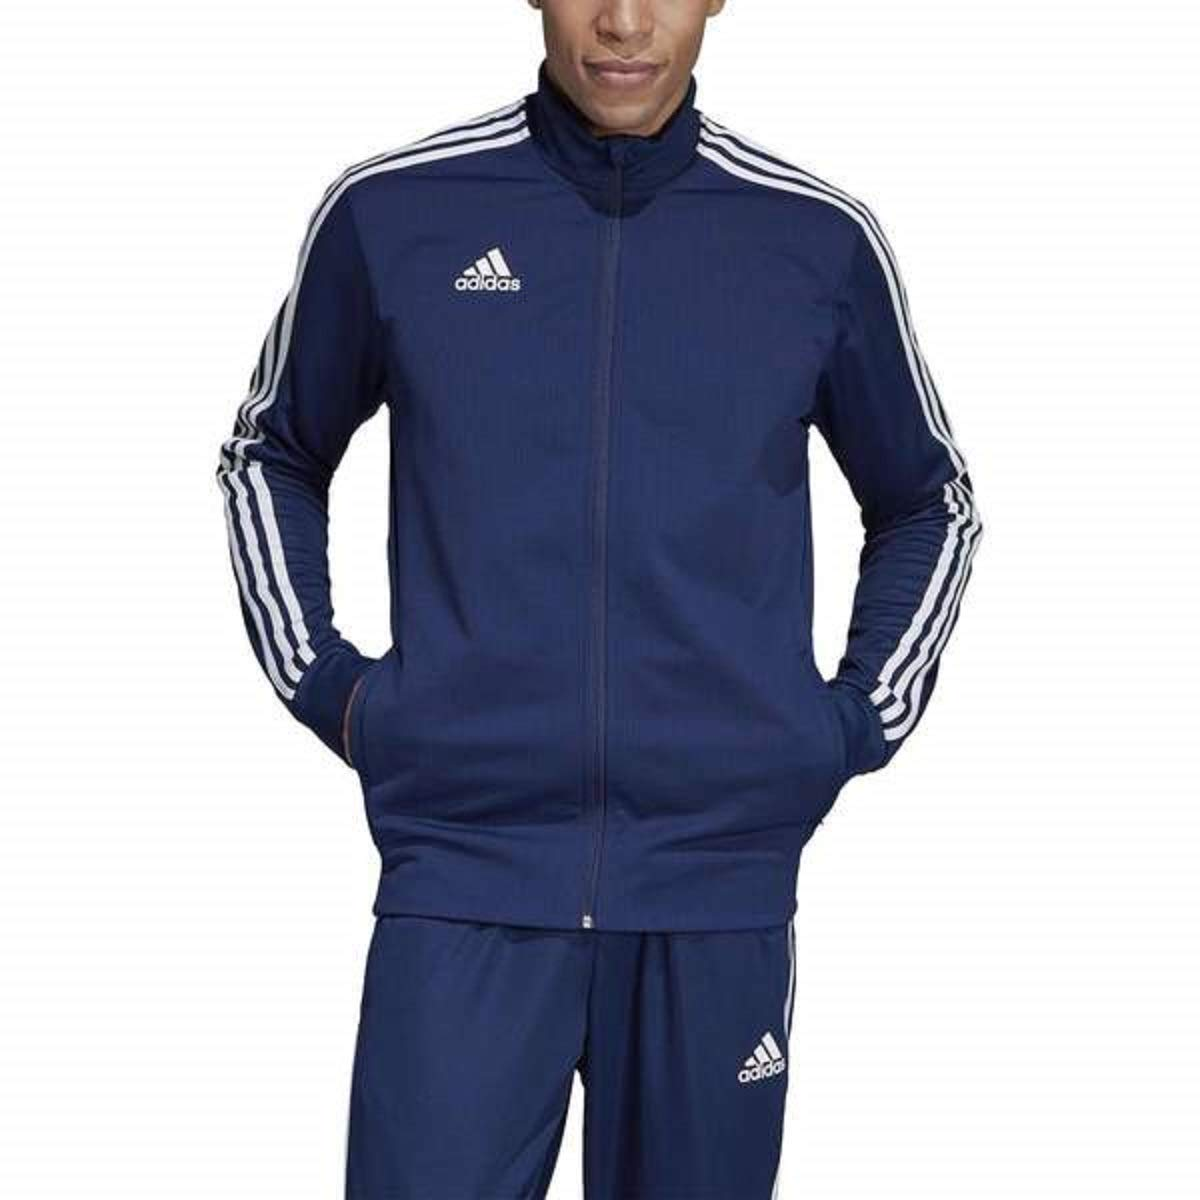 adidas Men's Tiro 19 Track Suit (L Jacket/S Pant, Navy/White) by adidas